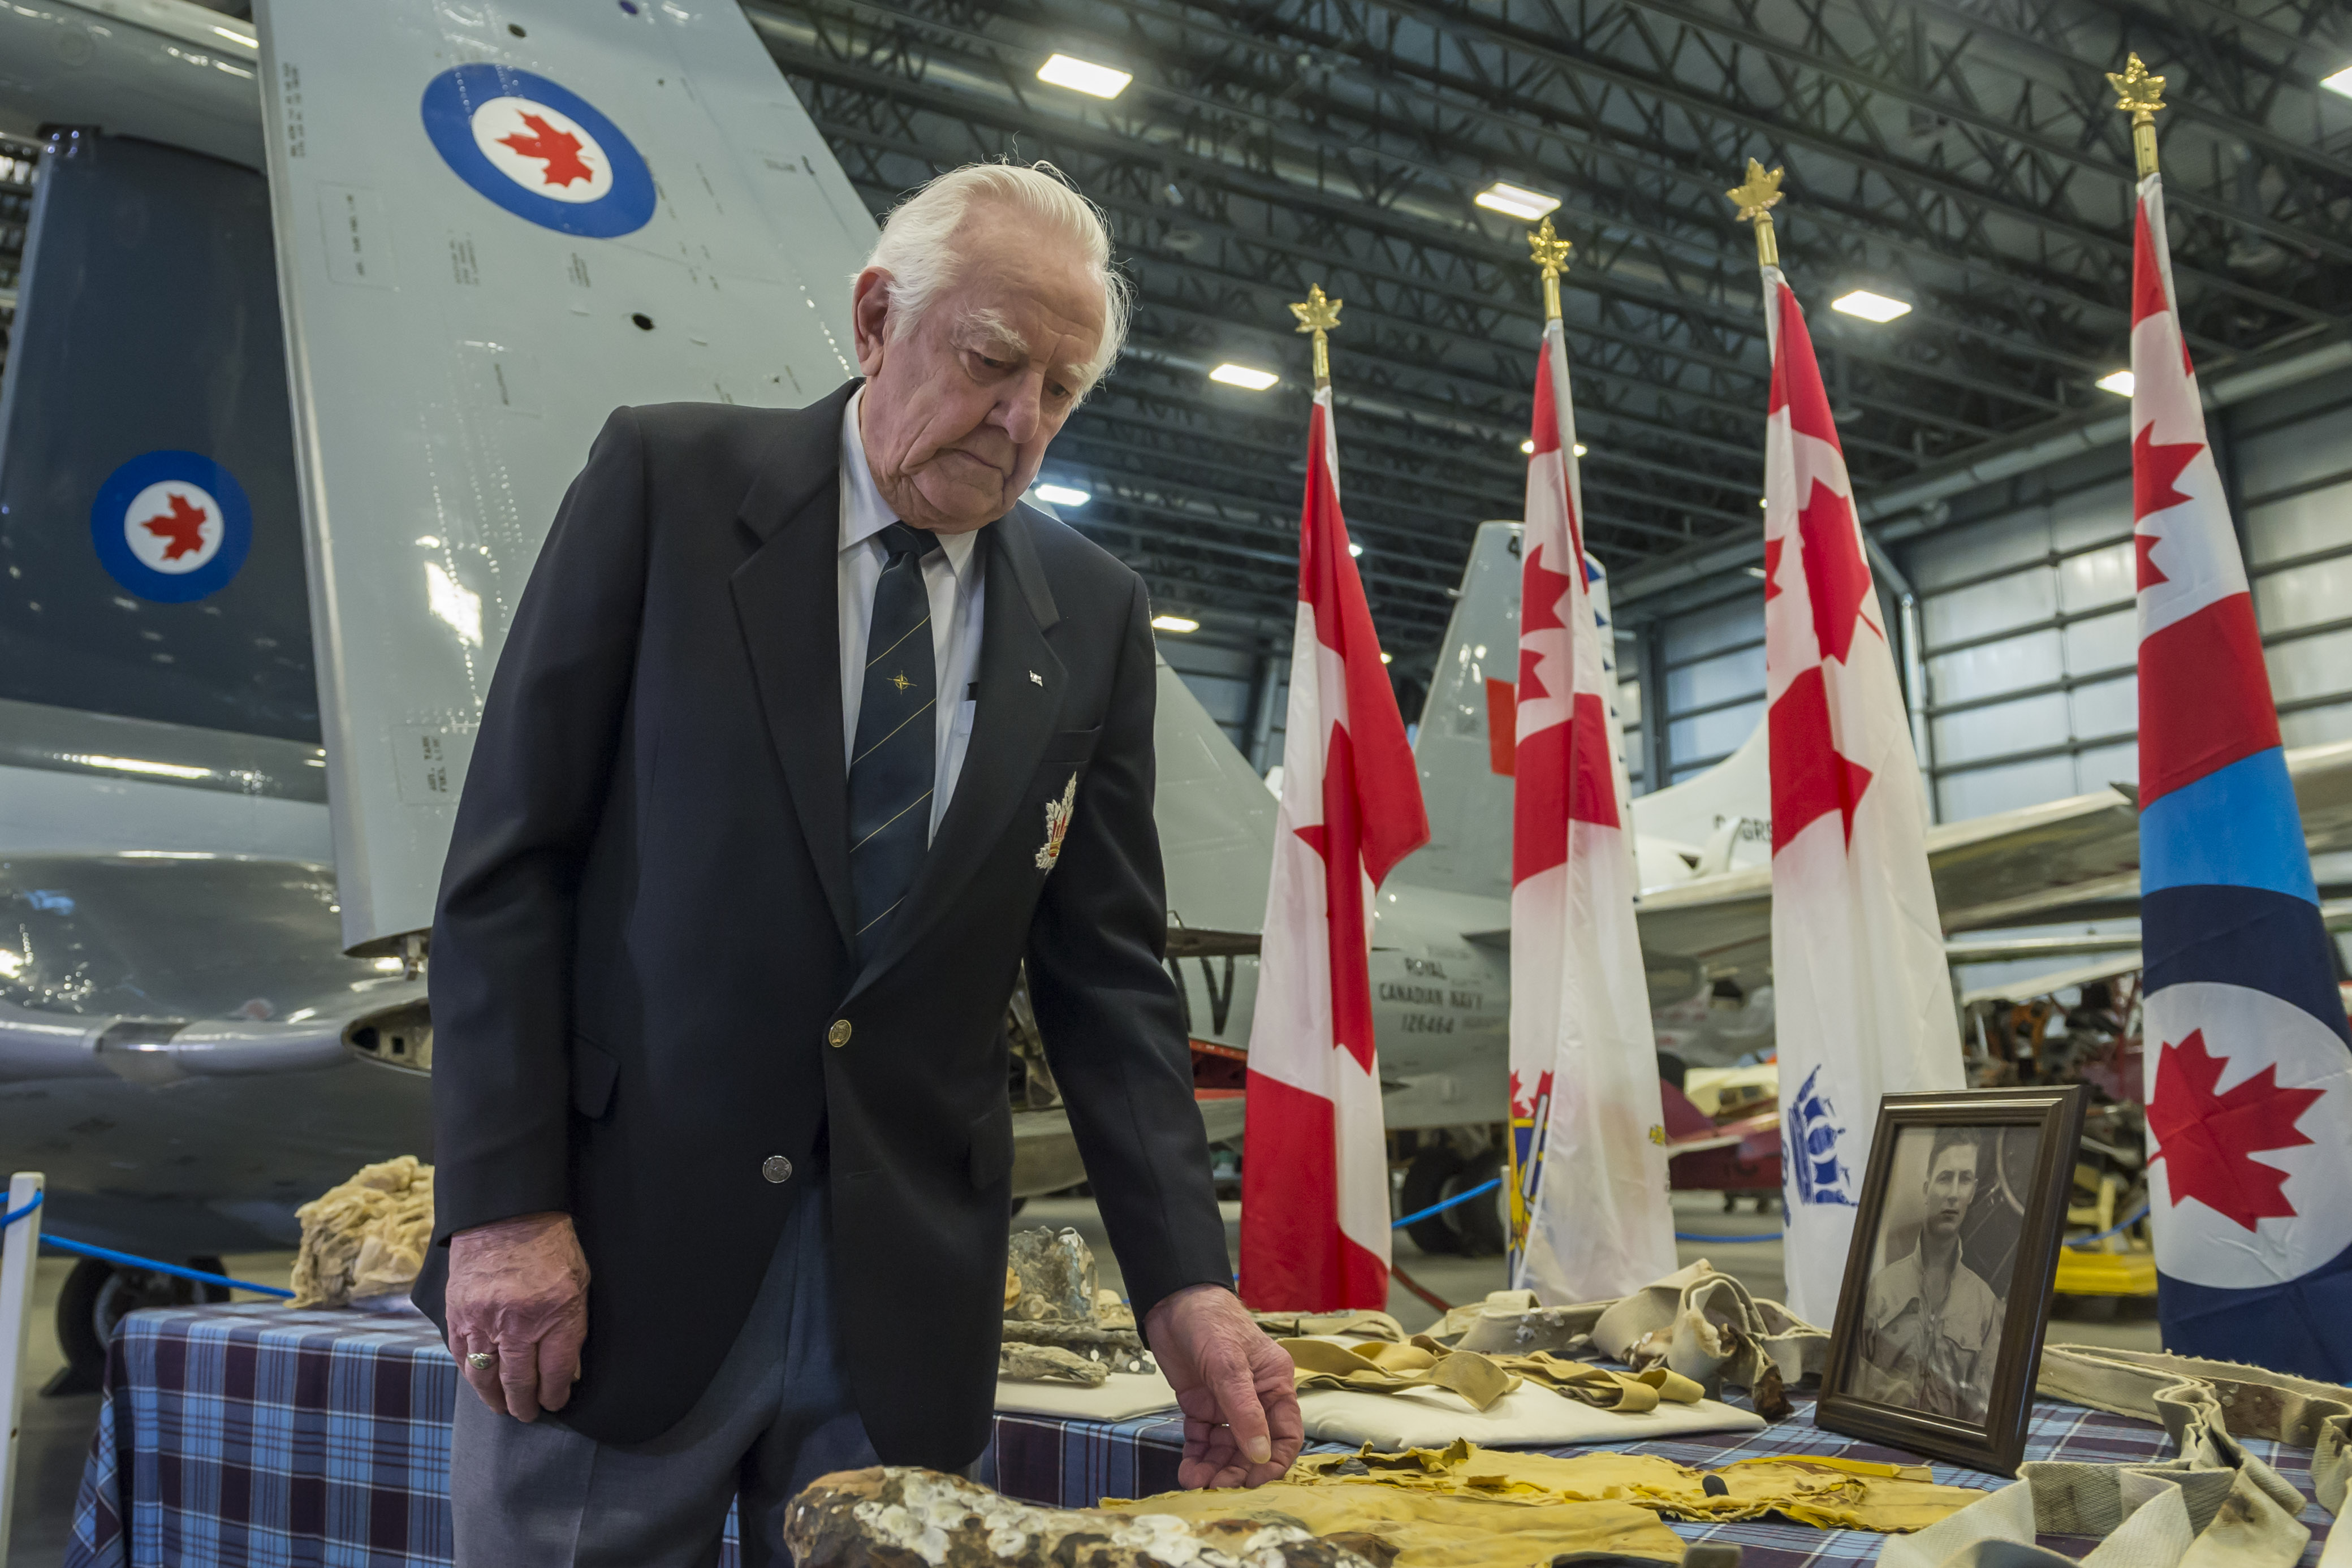 Mr. Bruce Baker, examining the artifacts at the invitation of Padre Askew, was a Royal Canadian Navy Tracker pilot and friend of Lieutenant Troy's. PHOTO: Corporal Alana Morin, FA03-2018-0038-042